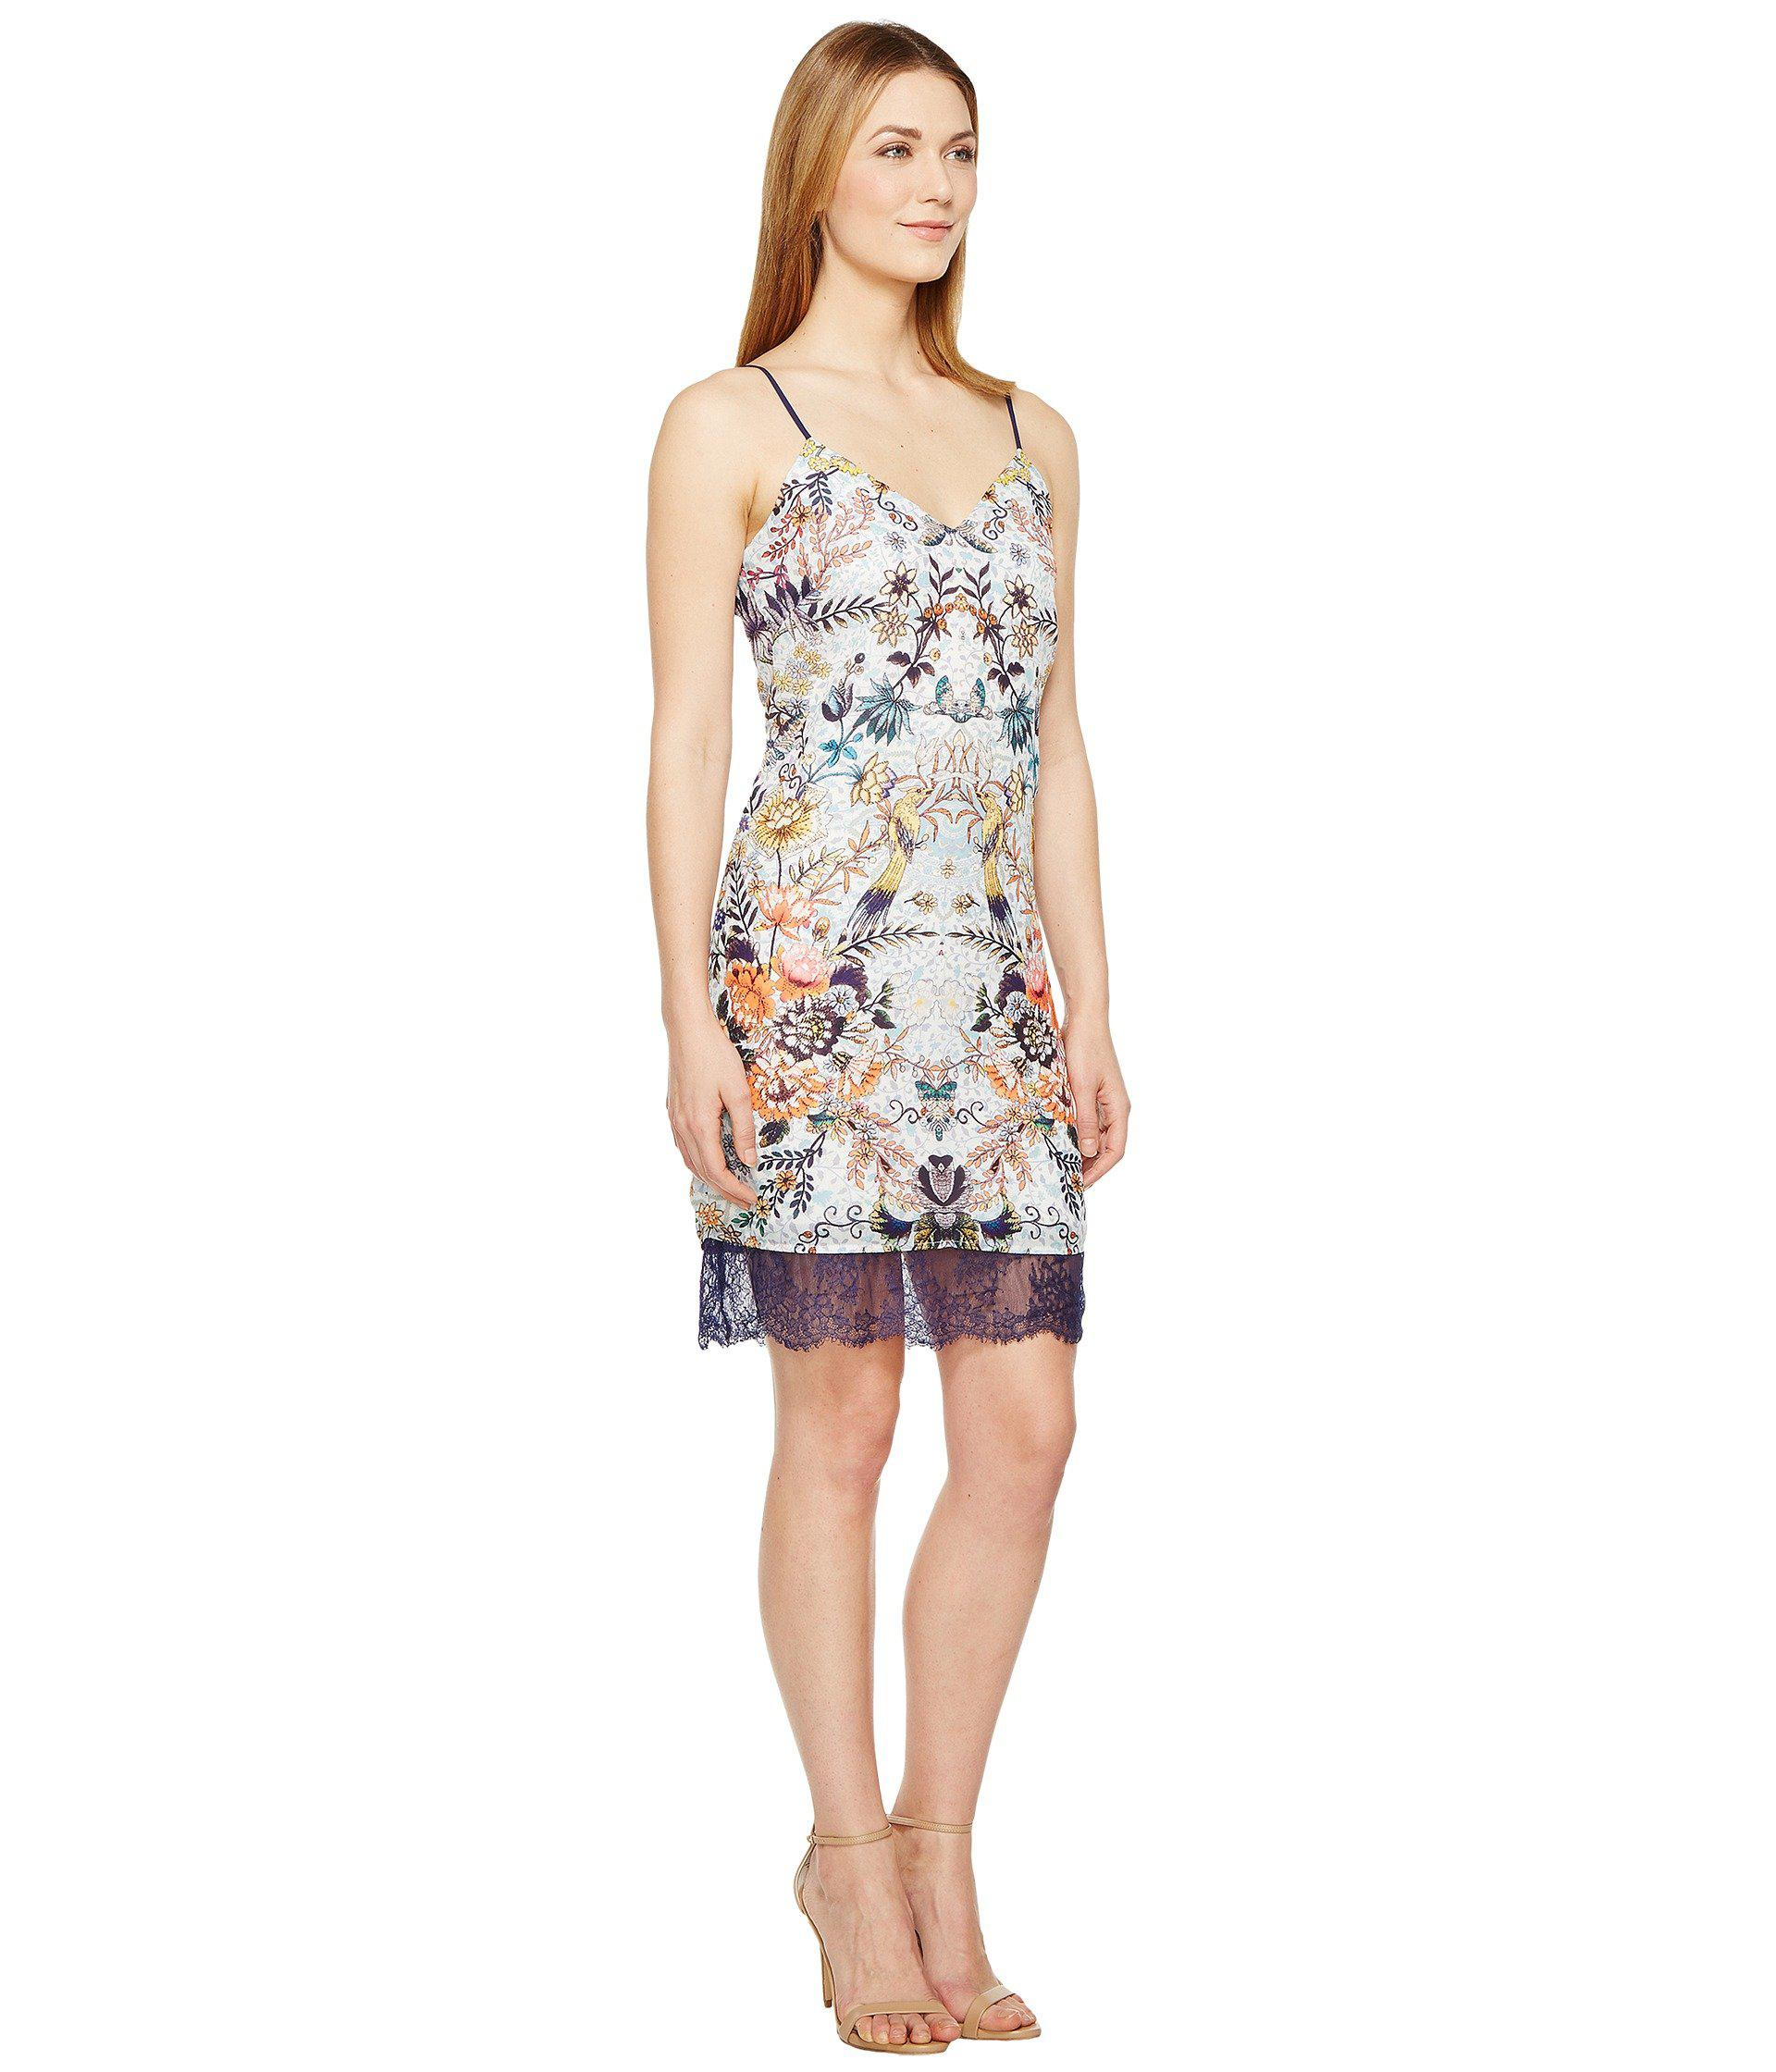 d767364c2a Adelyn Rae - White Lydia Woven Printed Slip Dress - Lyst. View fullscreen